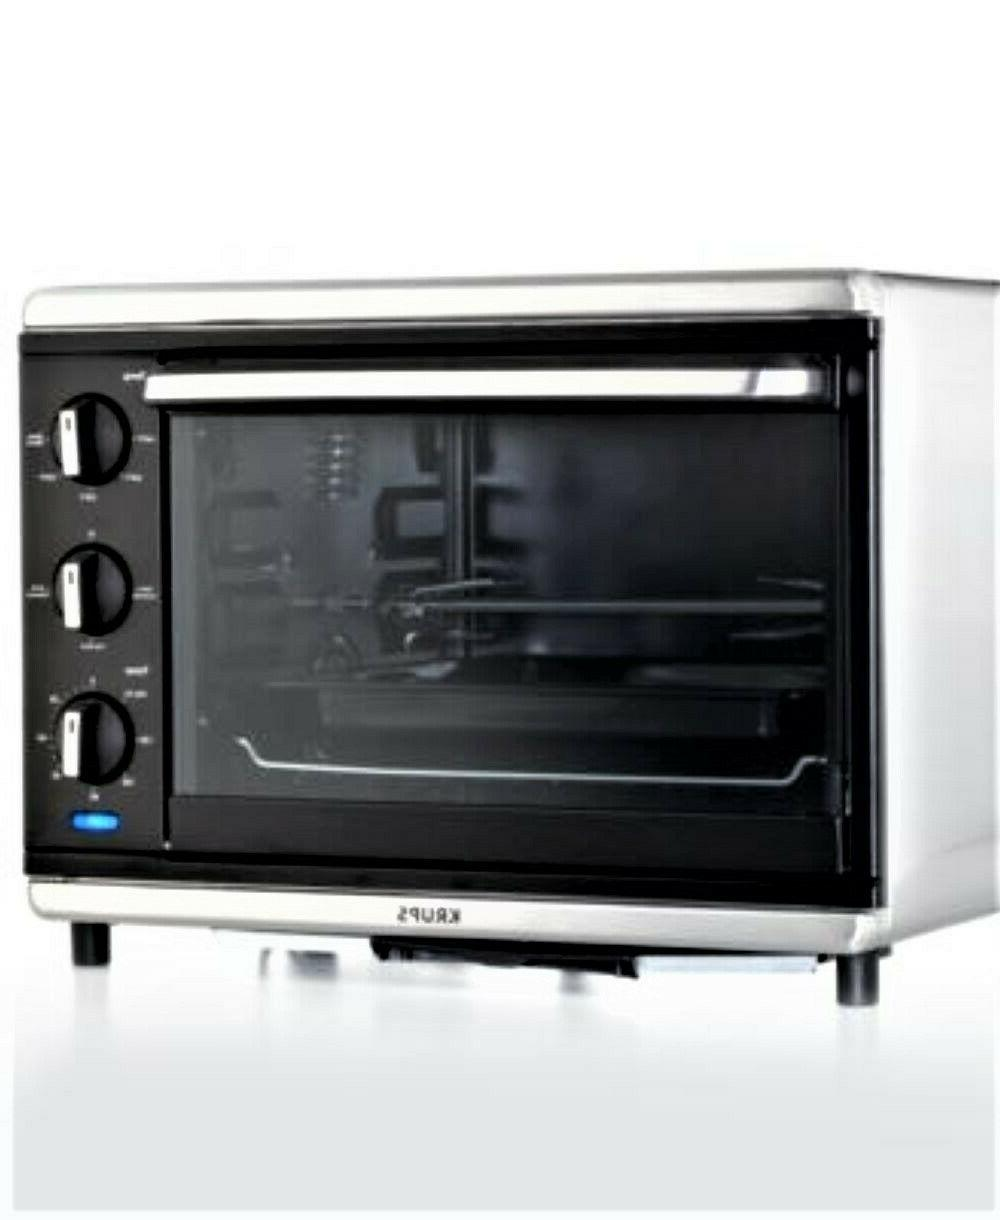 to740d50 definitive series stainless steel convection oven